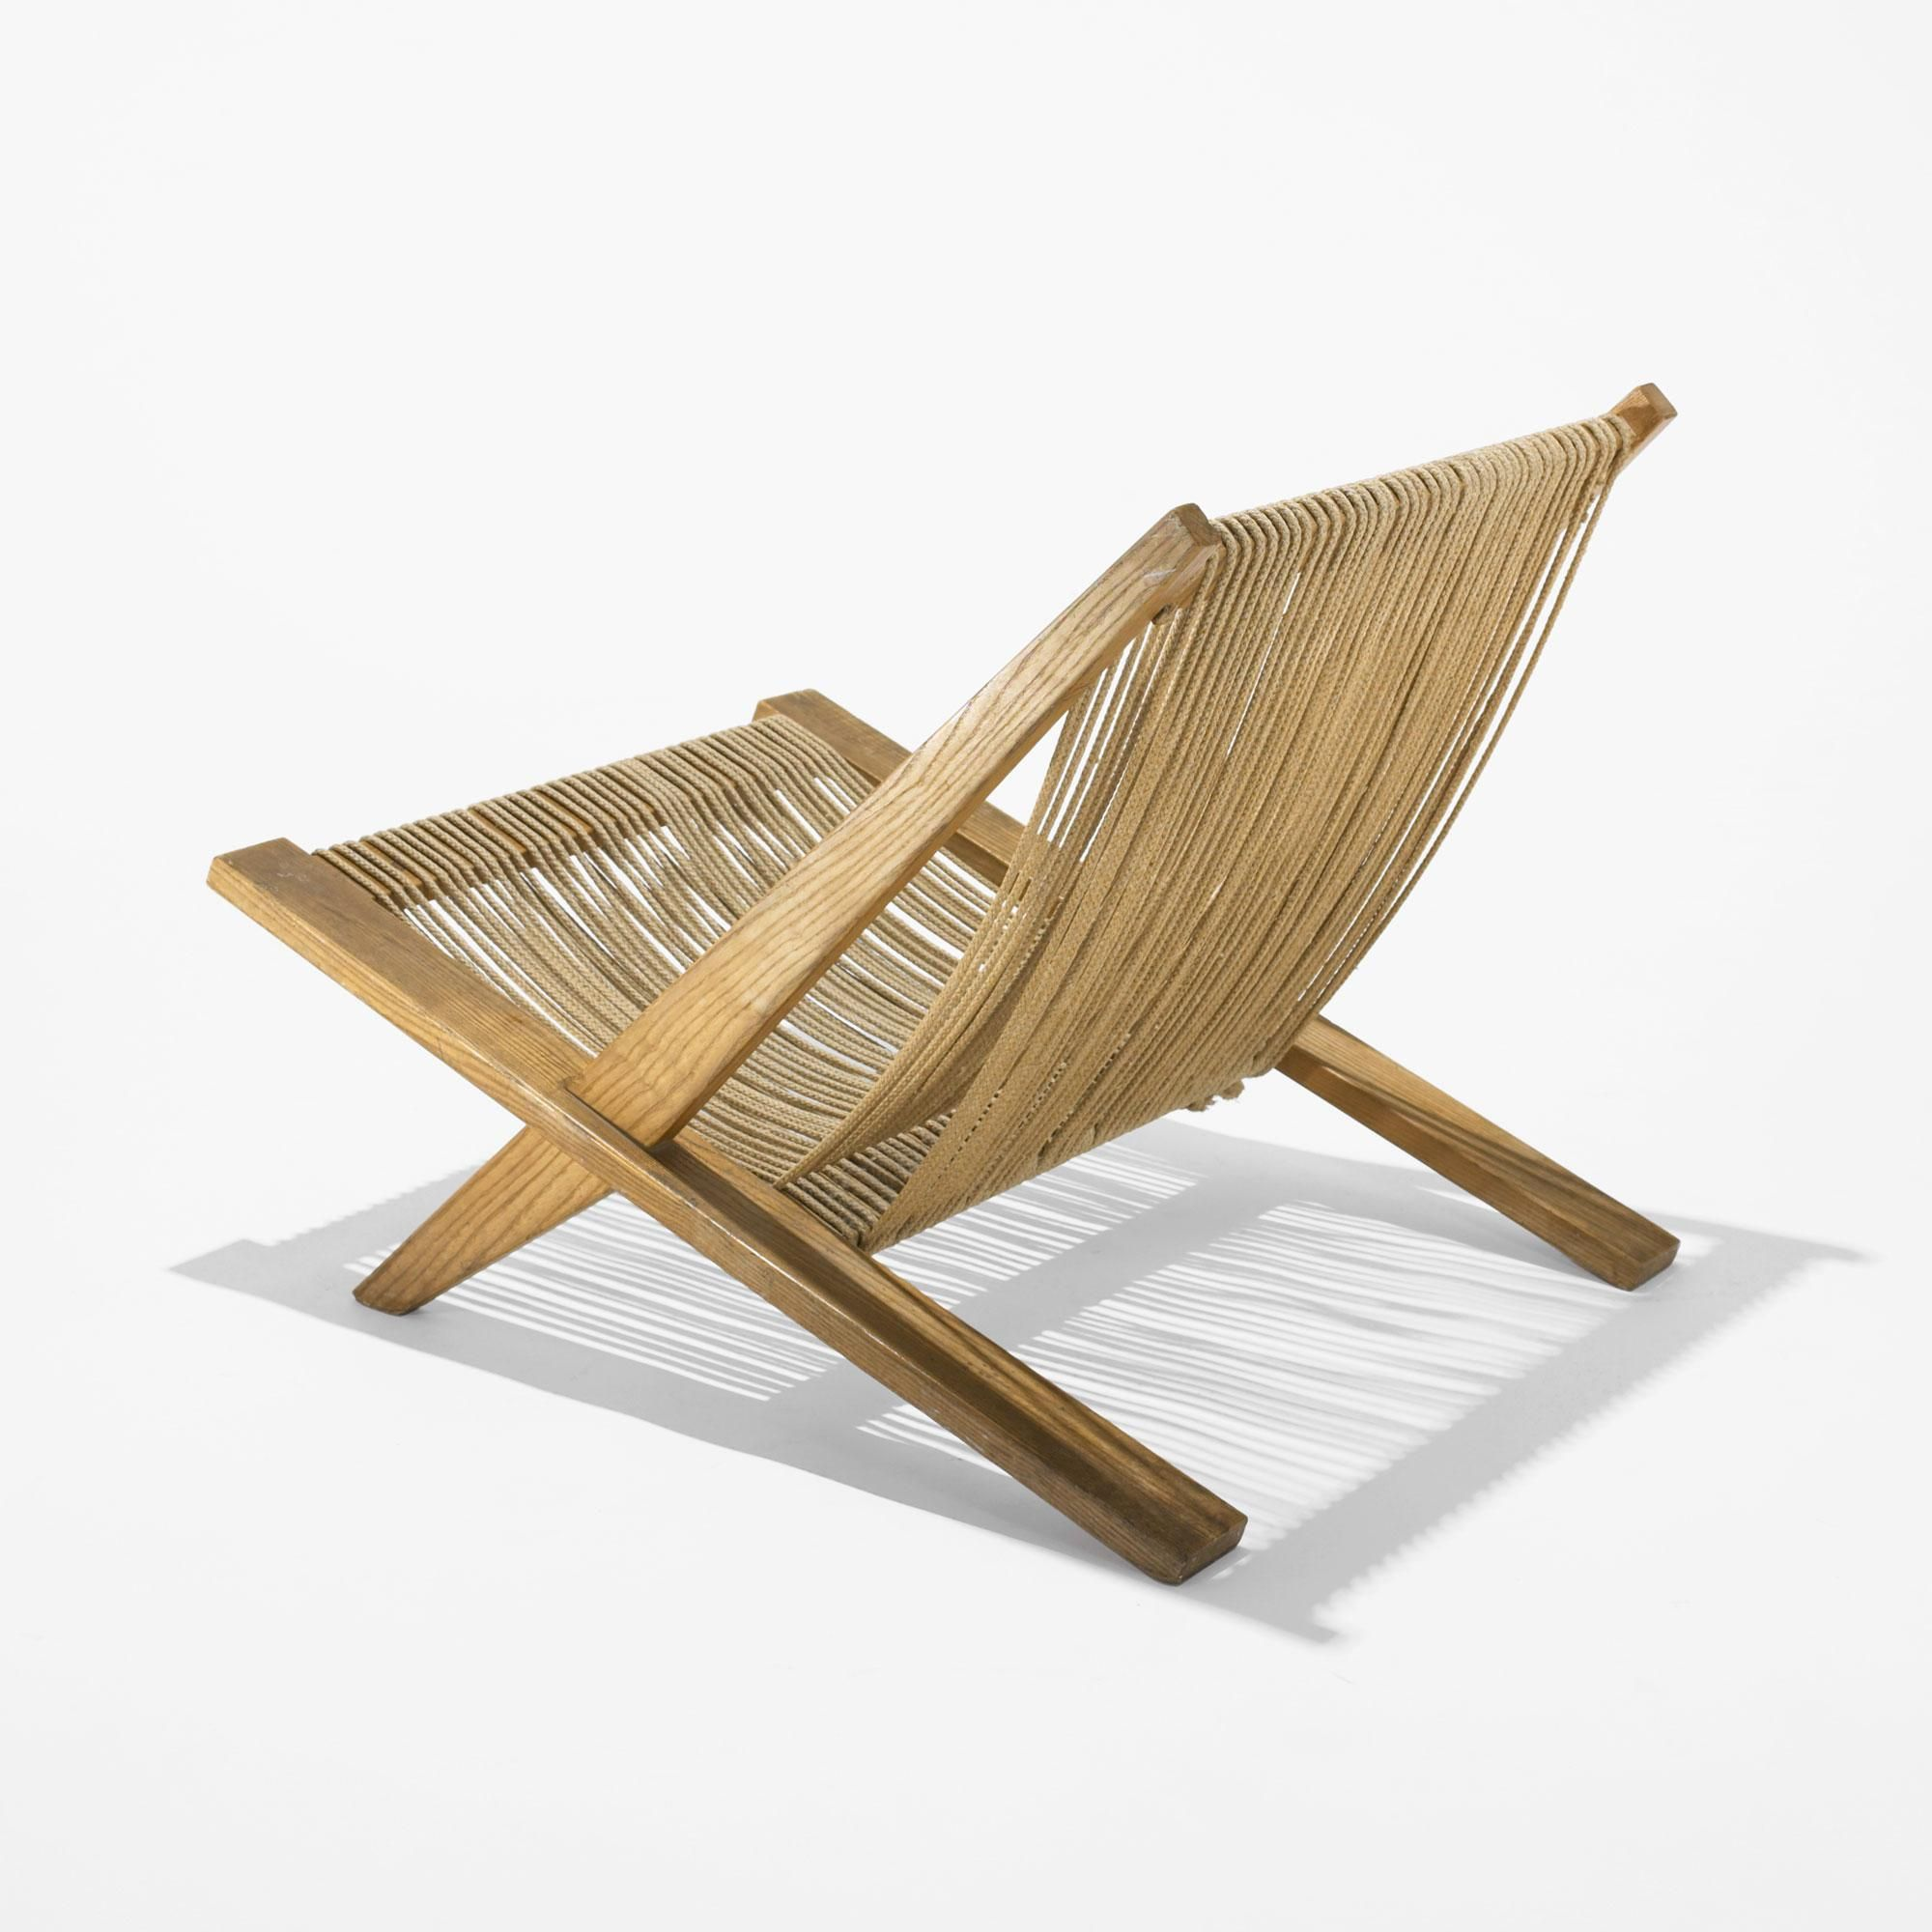 Poul Kjaerholm and J¸rgen H¸j Oak and Halyard Lounge Chair from